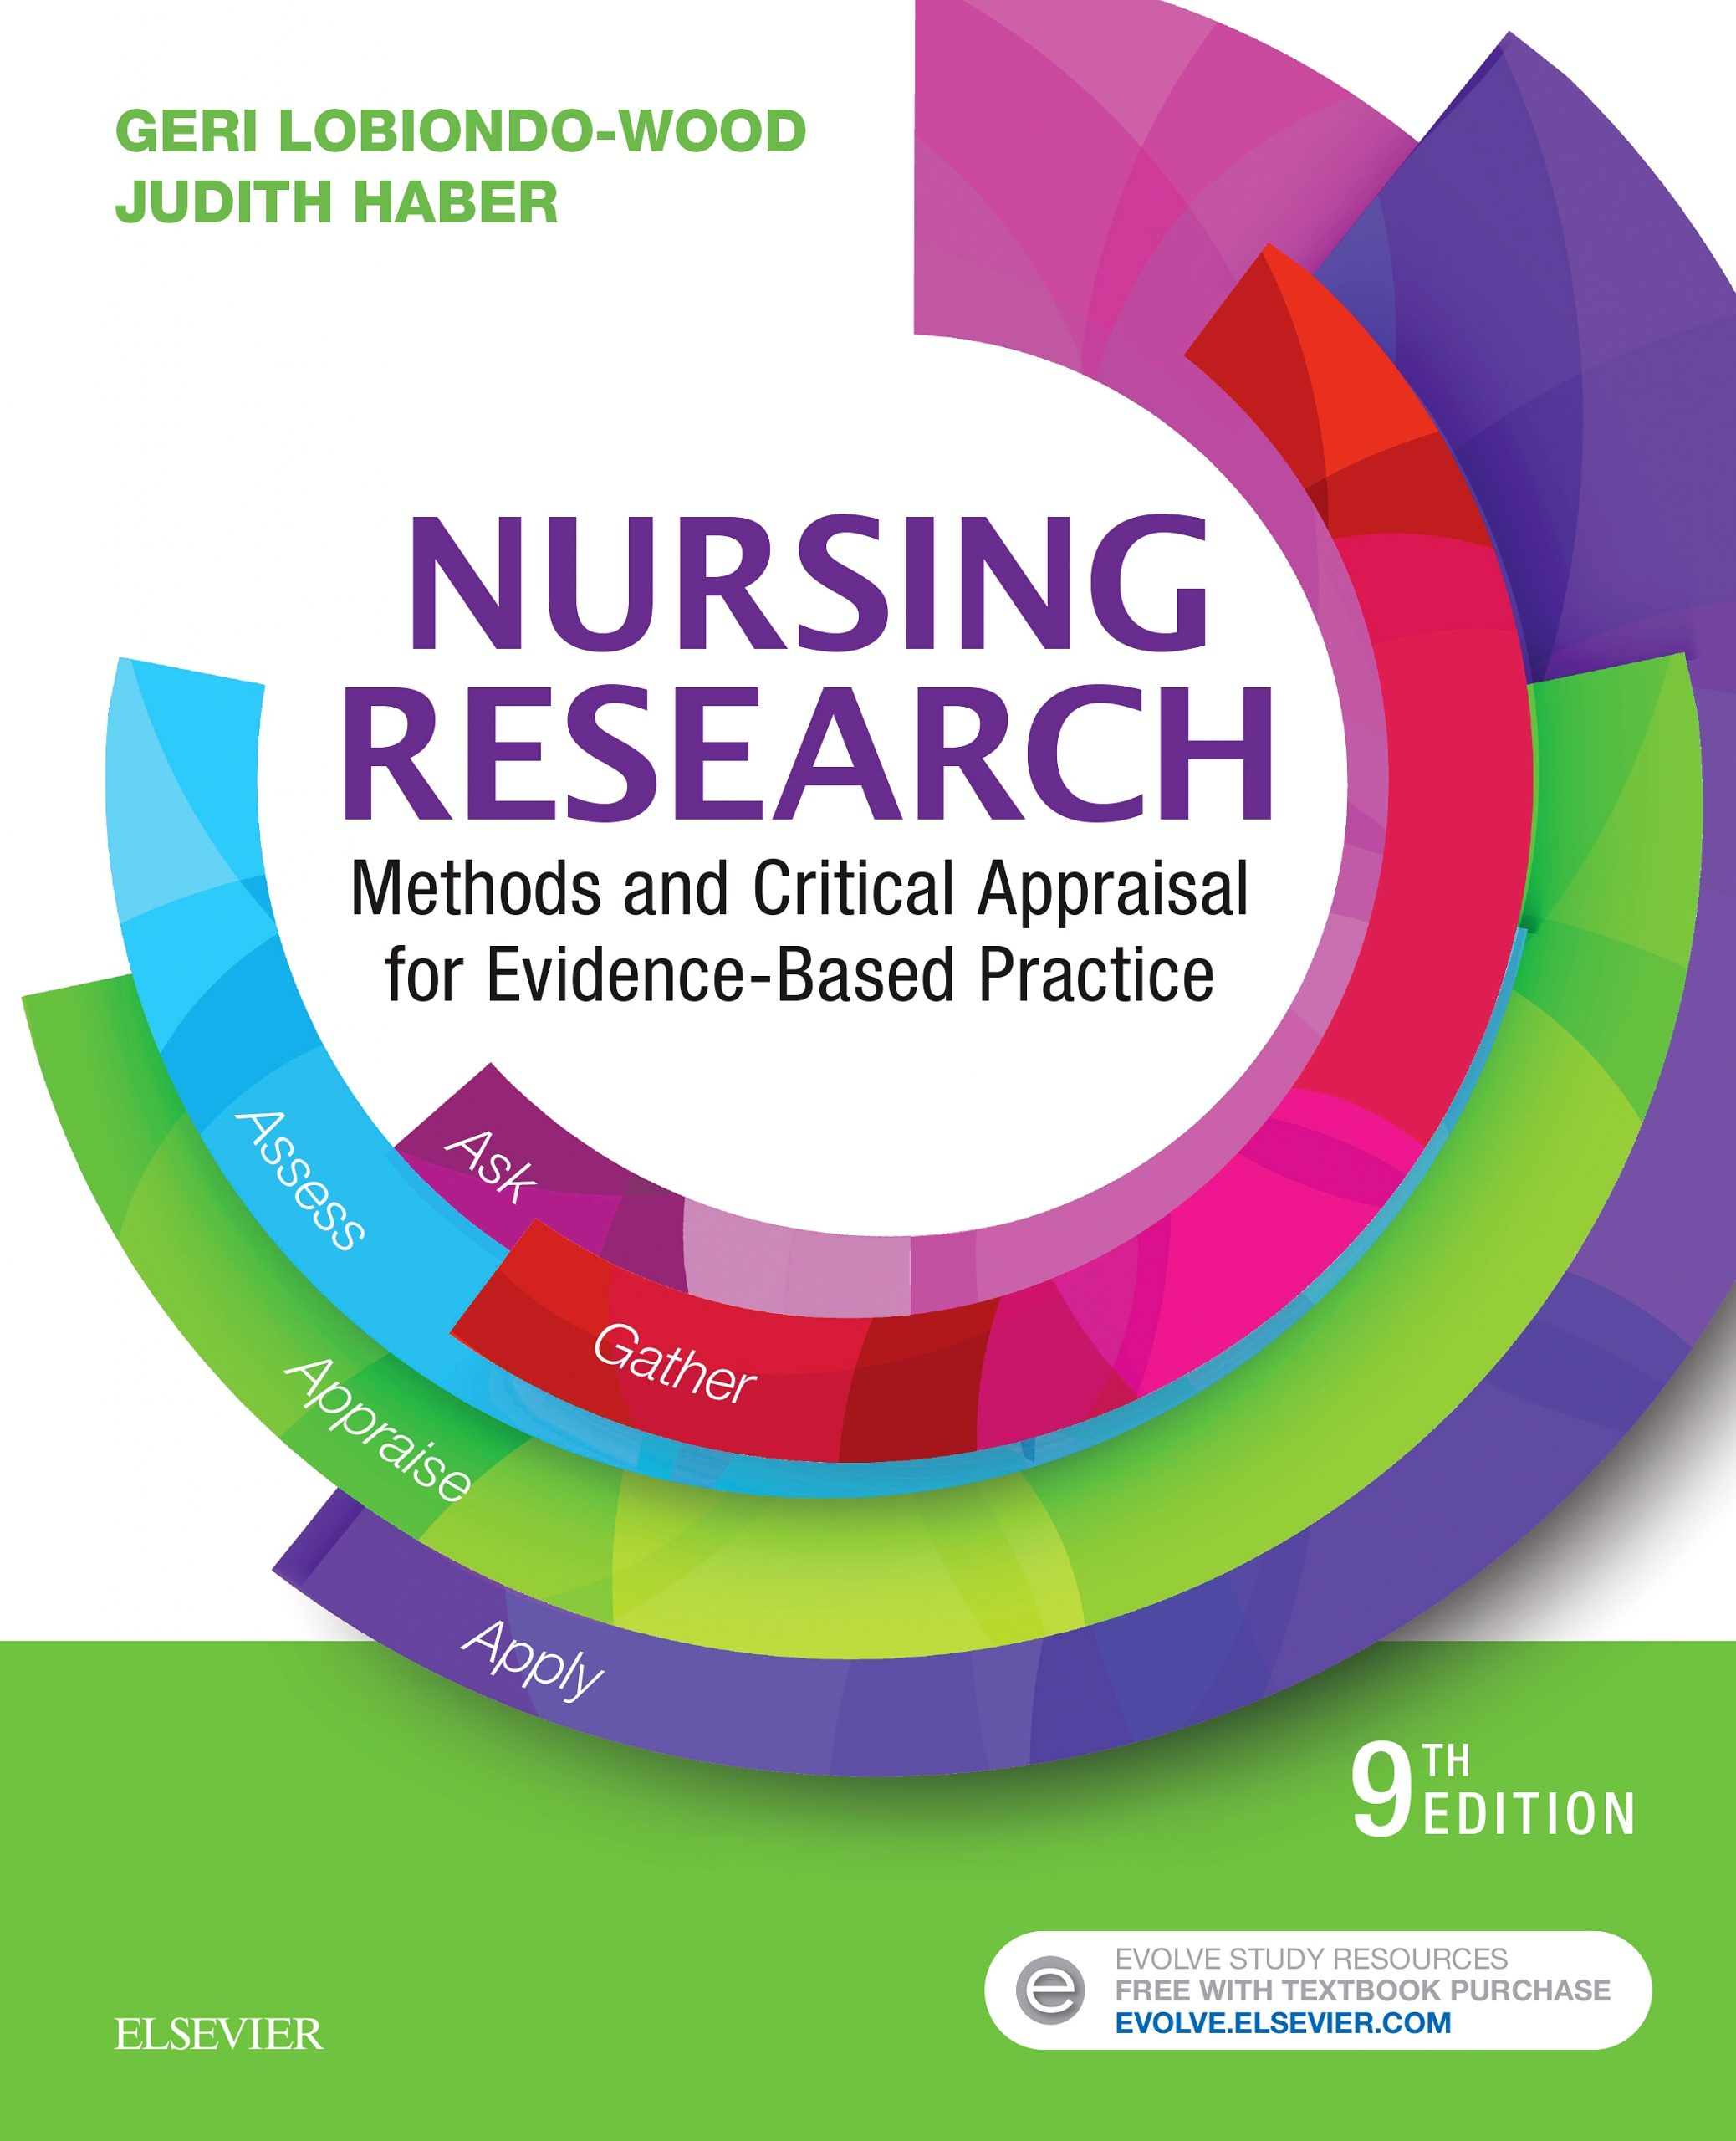 Test Bank for Nursing Research 9th Edition by LoBiondo-Wood